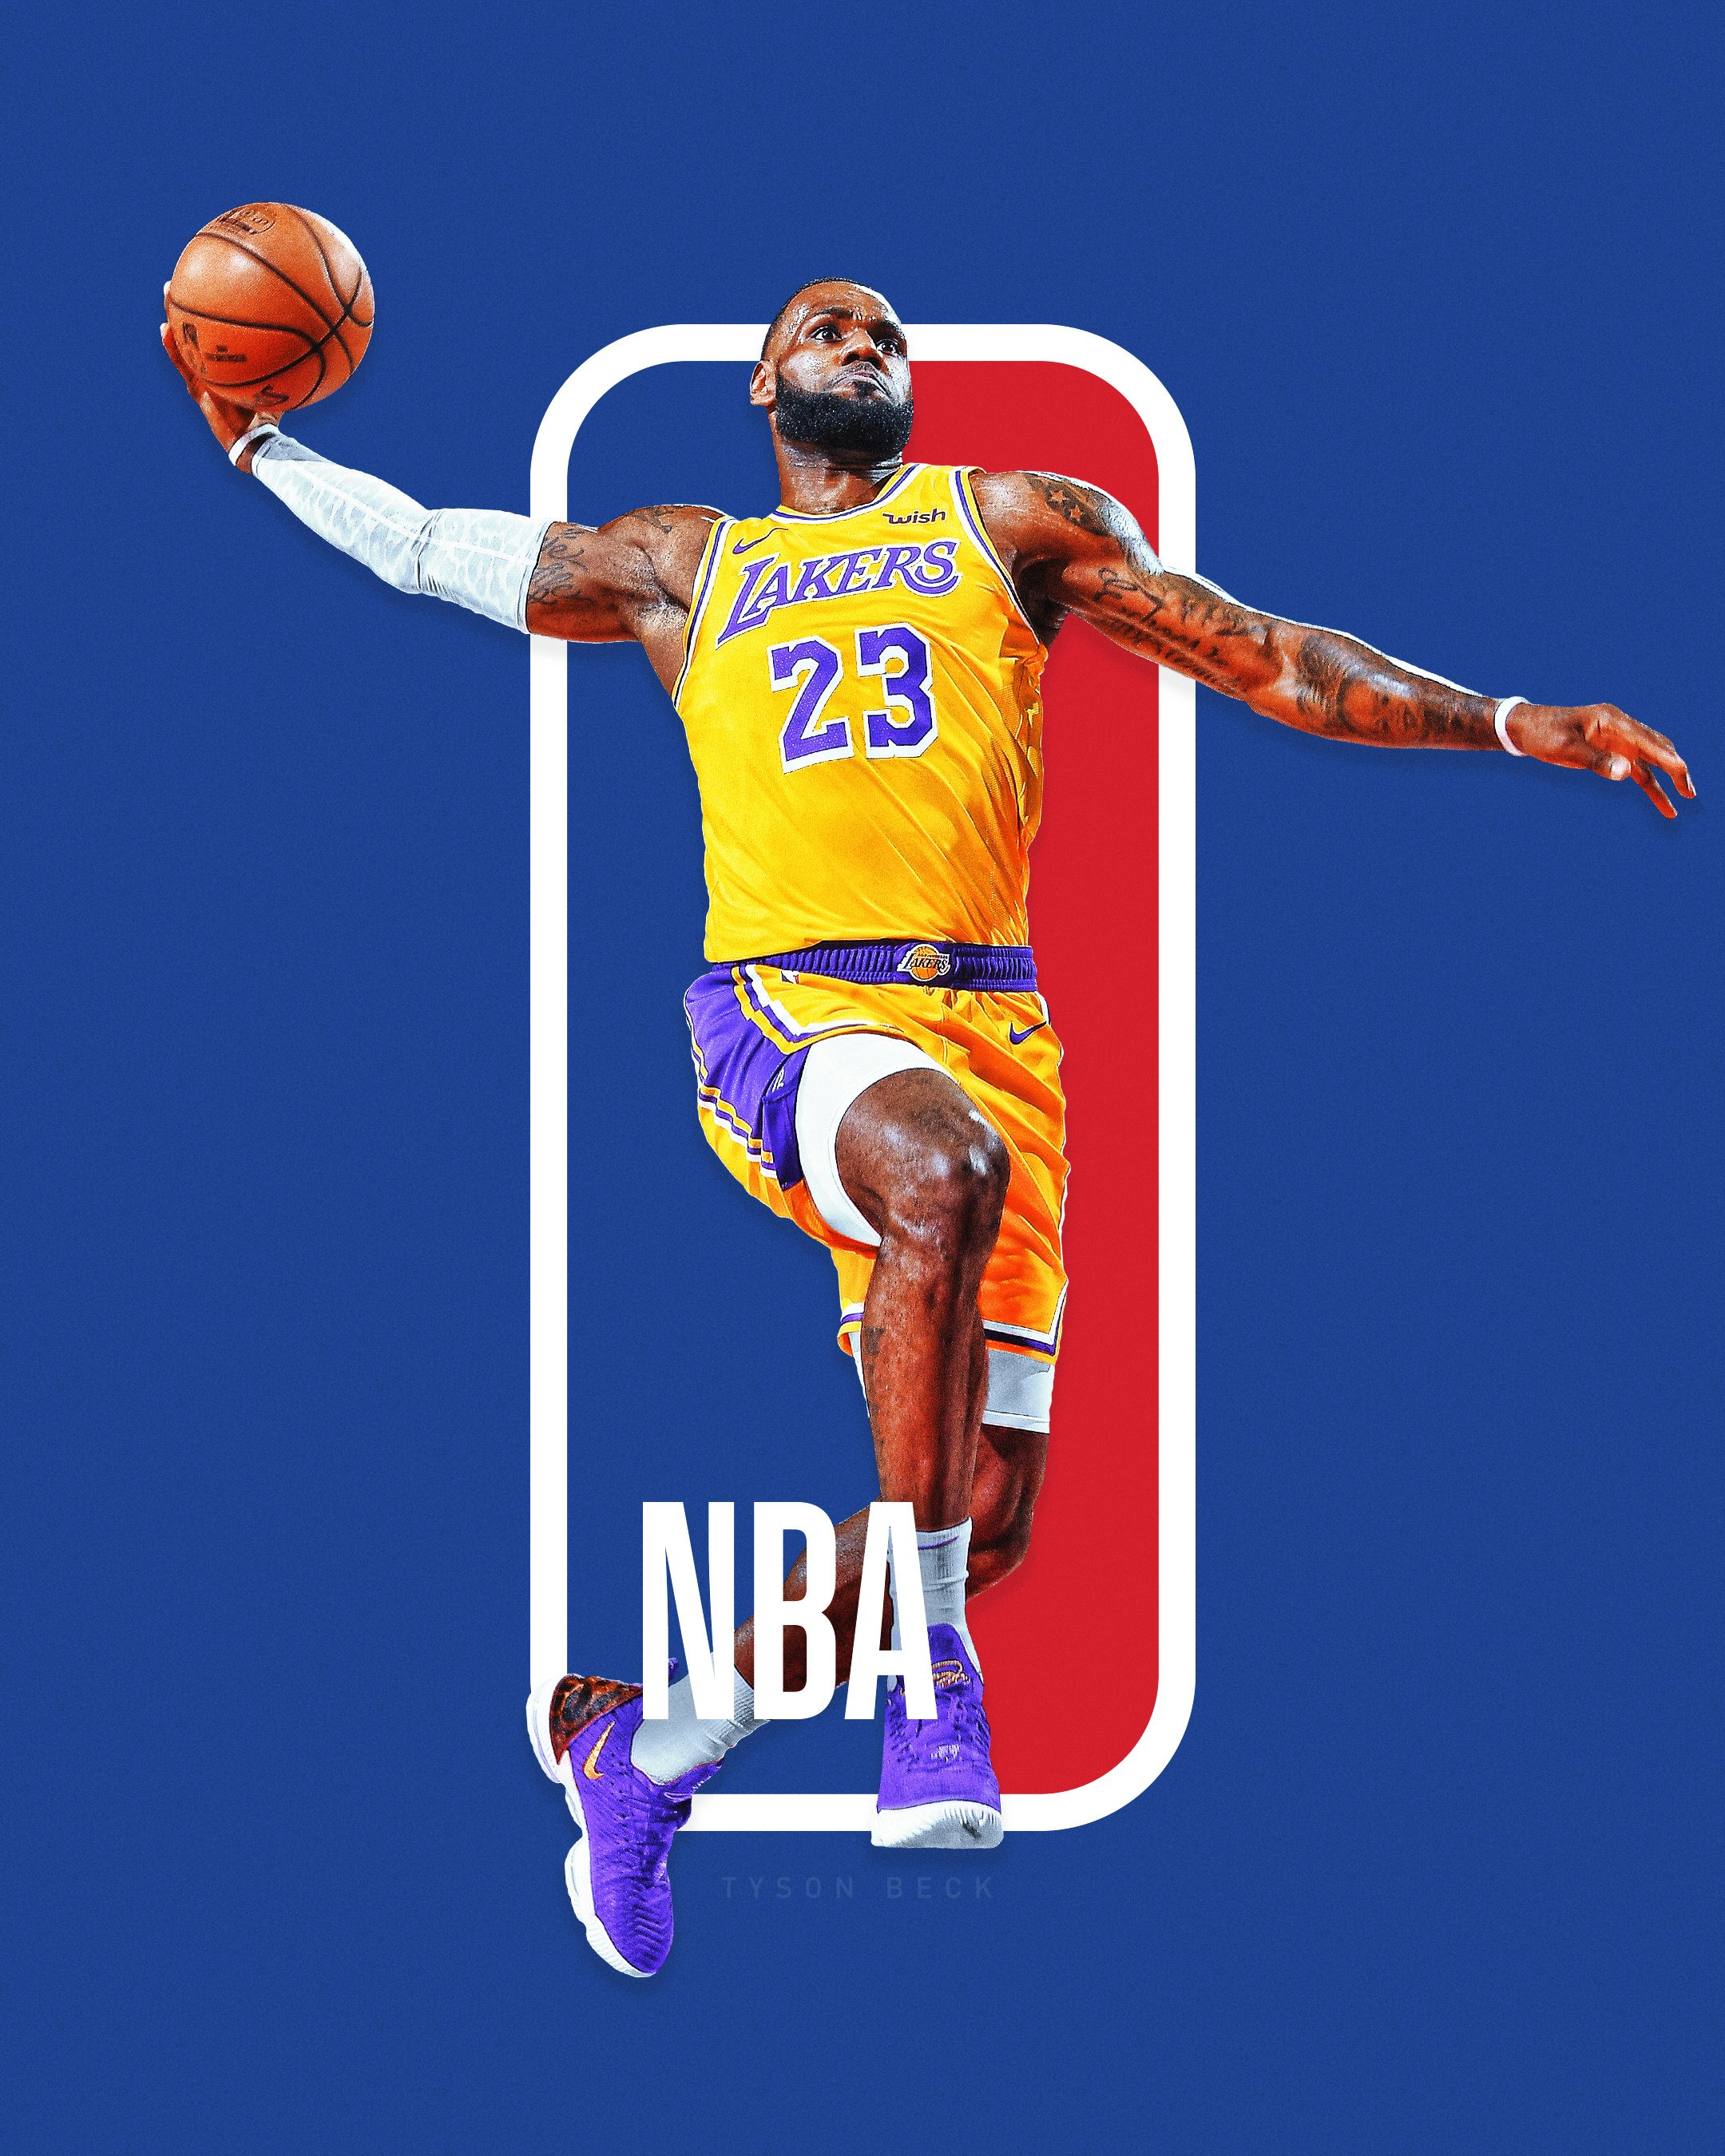 The Next Nba Logo Nba Logoman Series On Behance Nba Logo Nba Lebron James Nba